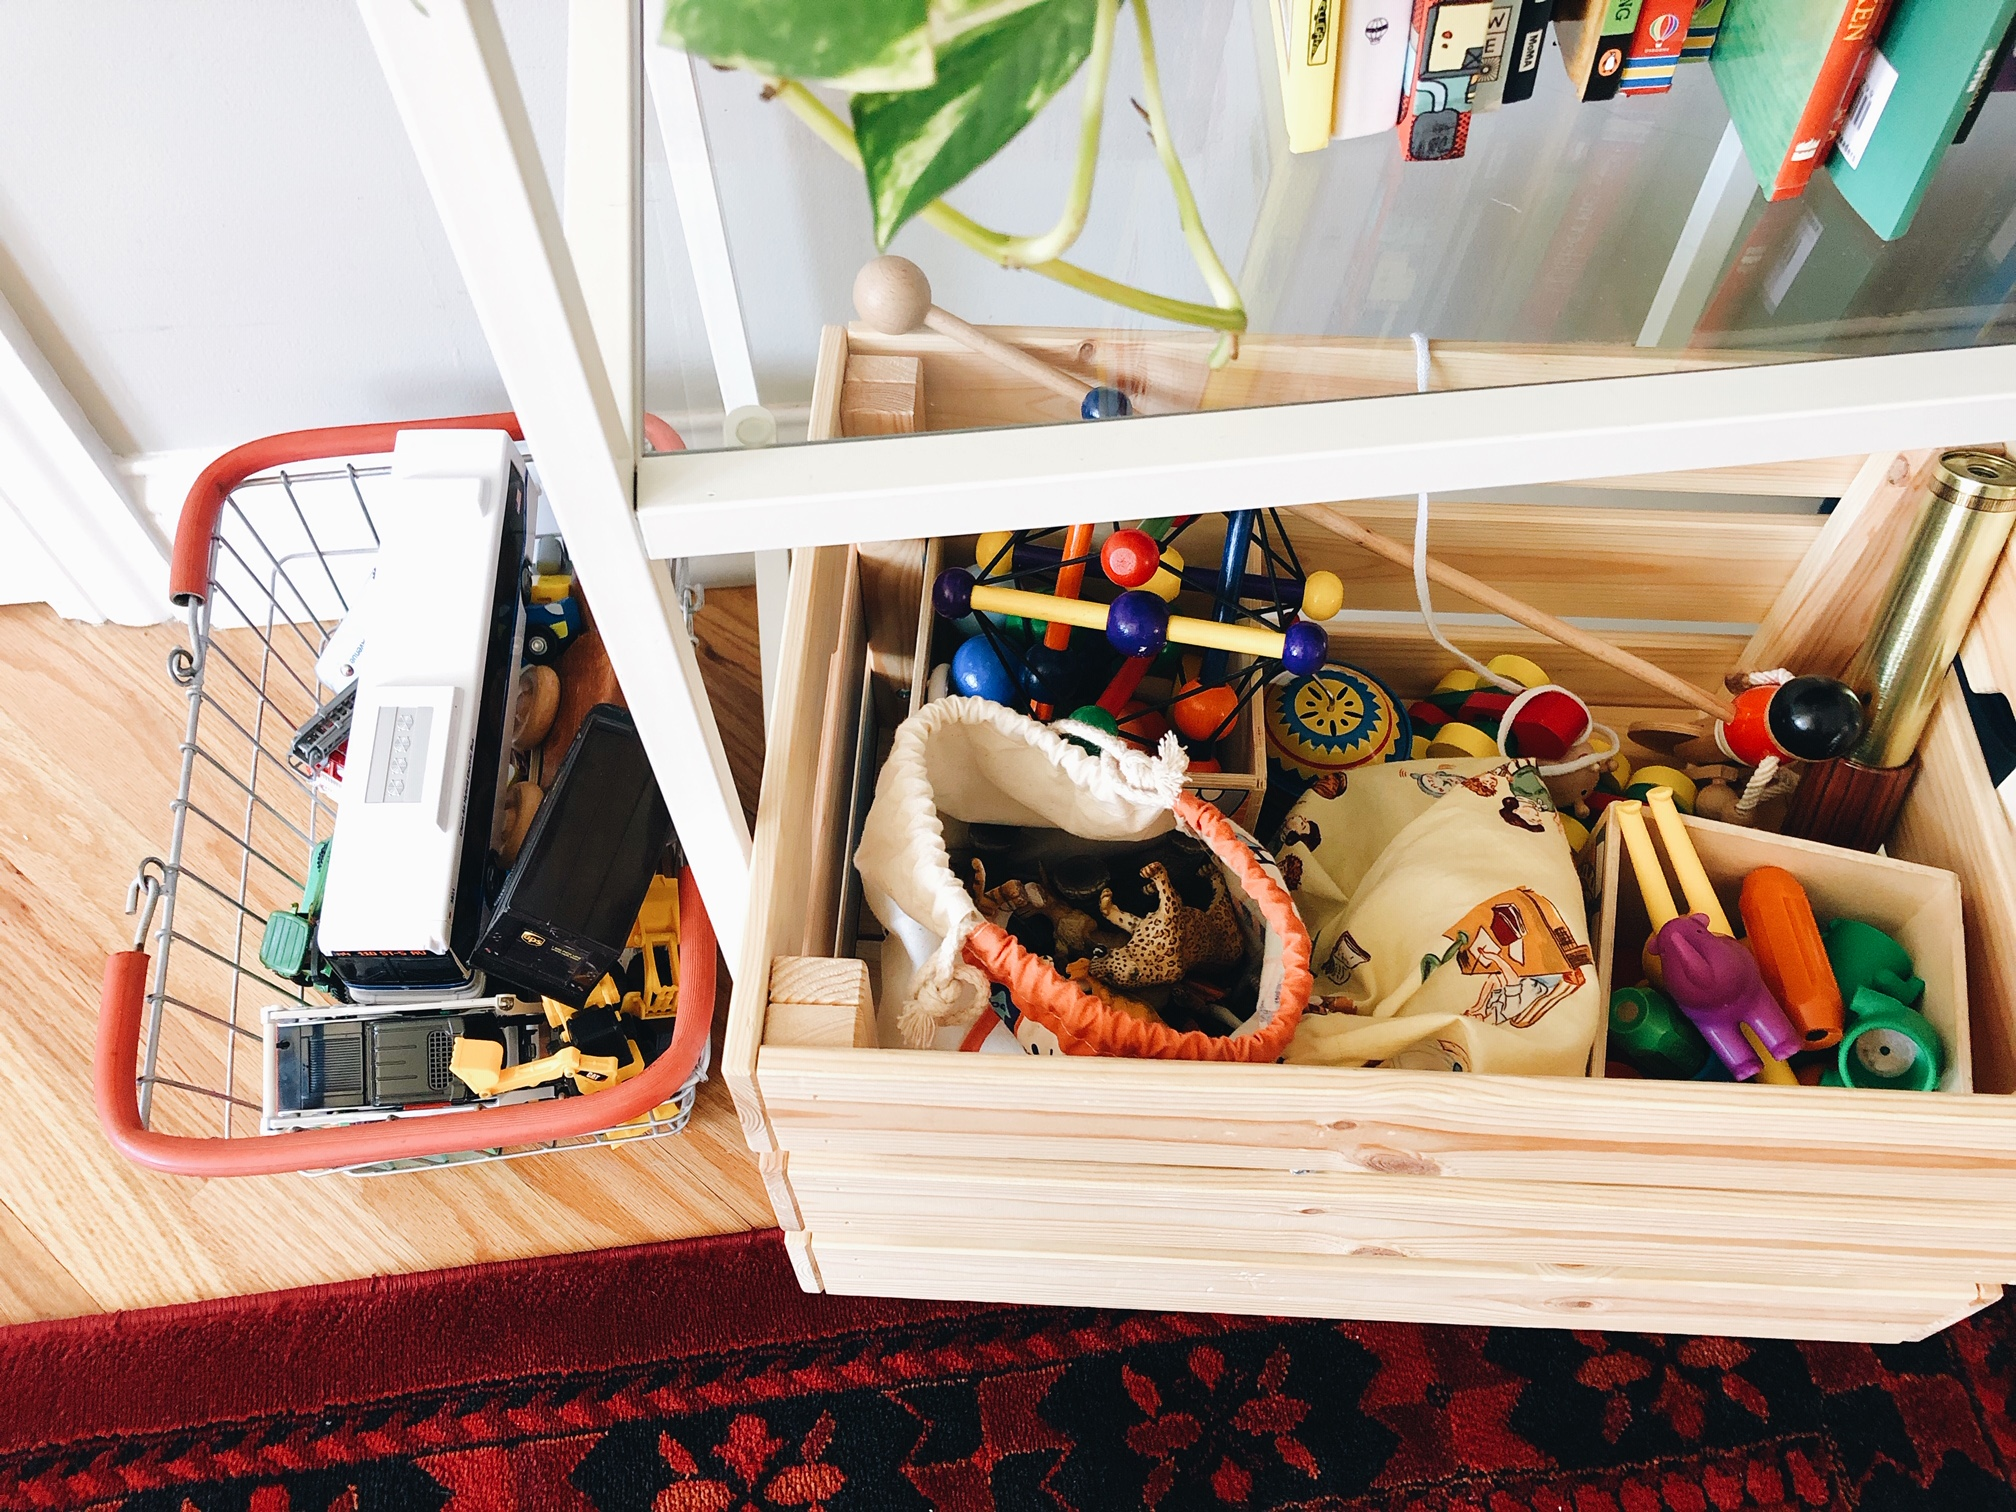 Toy Storage and Organization in a Small Space. Mandalyn Renicker  @mandalynrael